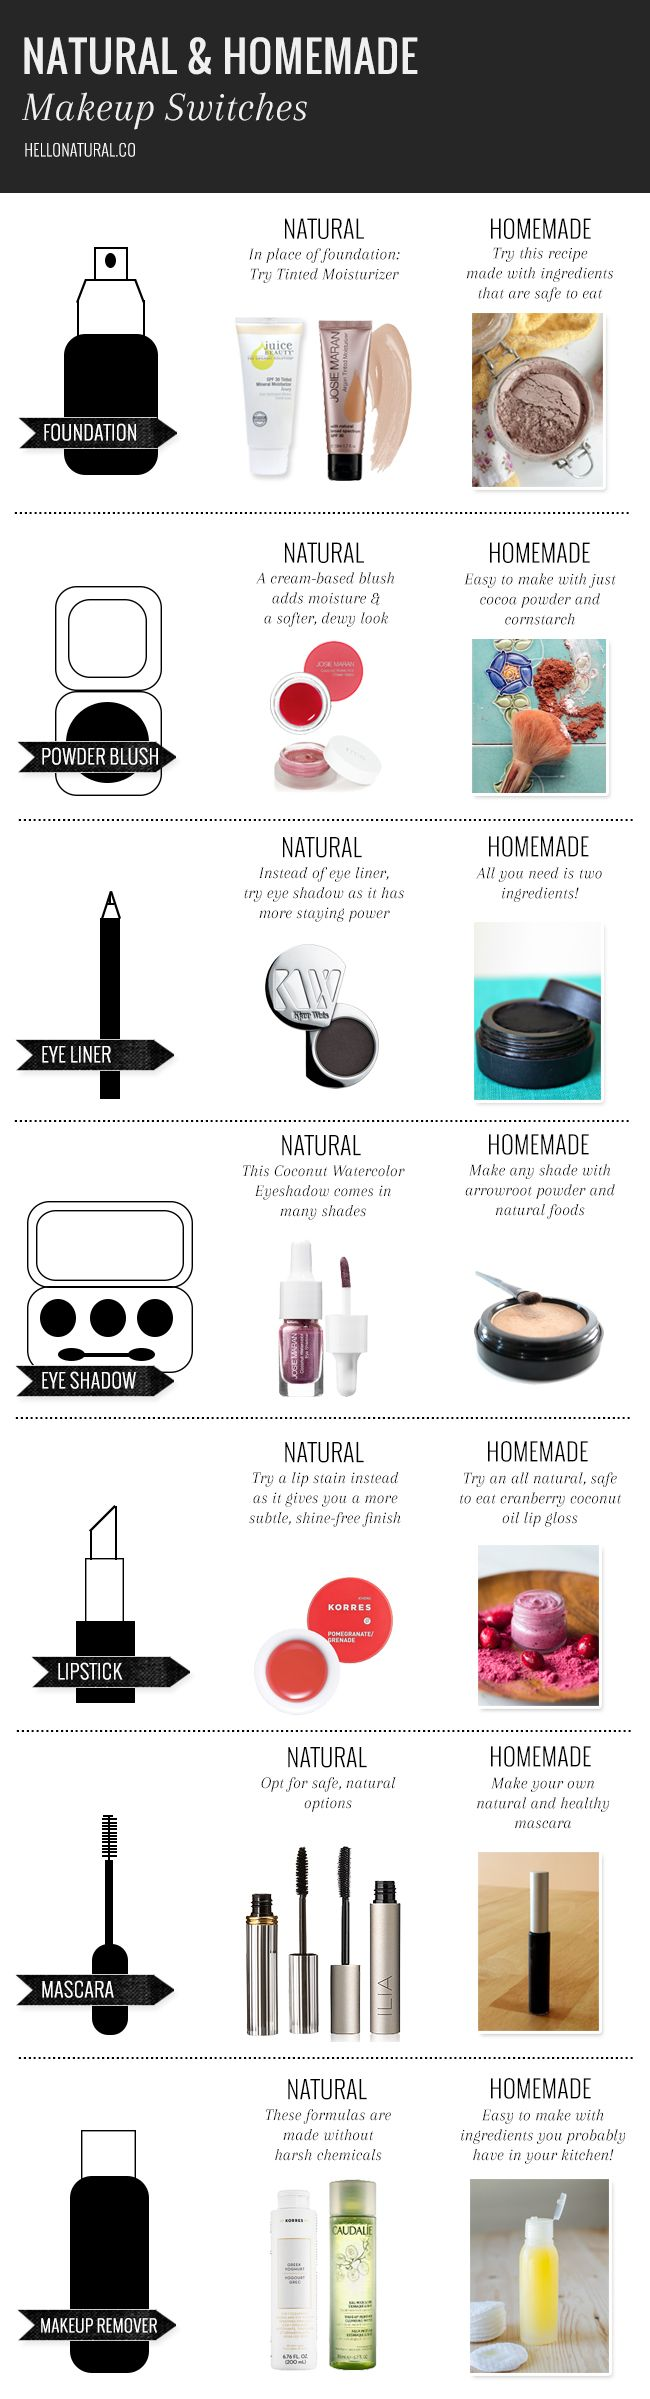 7 Natural   Homemade Makeup Switches | http://hellonatural.co/7-natural-homemade-makeup-switches/